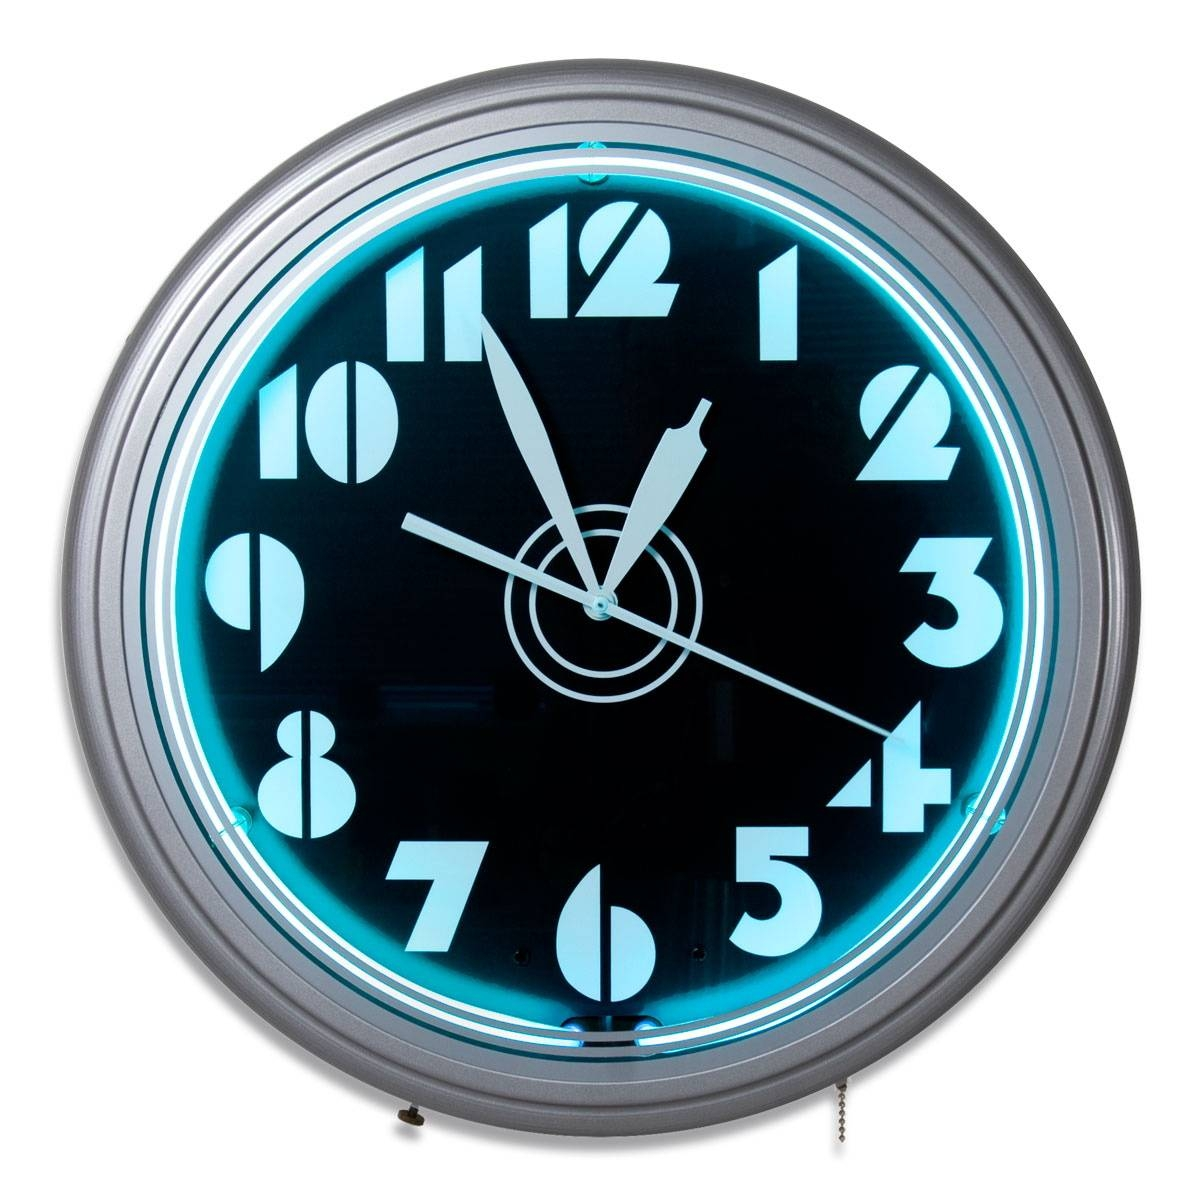 Art Deco Stencil Numbers Neon Wall Clock | Vintage Garage Clocks In Latest Art Deco Wall Clocks (View 5 of 25)